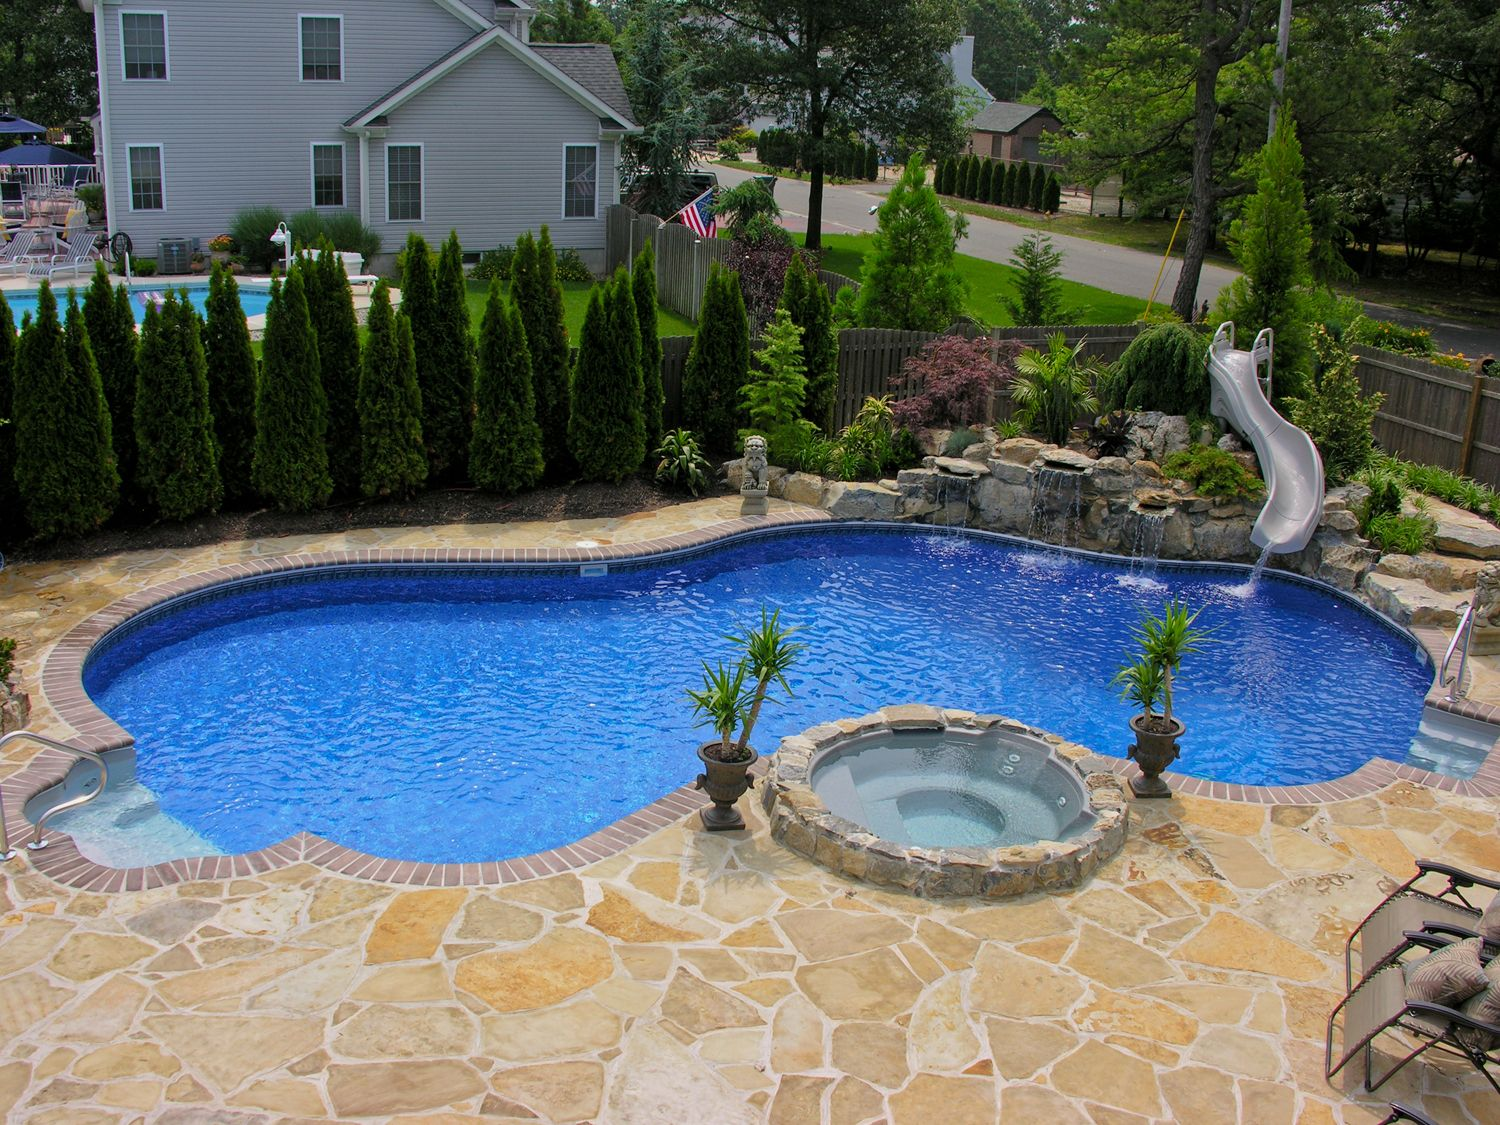 Pool town nj inground swimming pools with spa and slide for Pool design hamilton nj